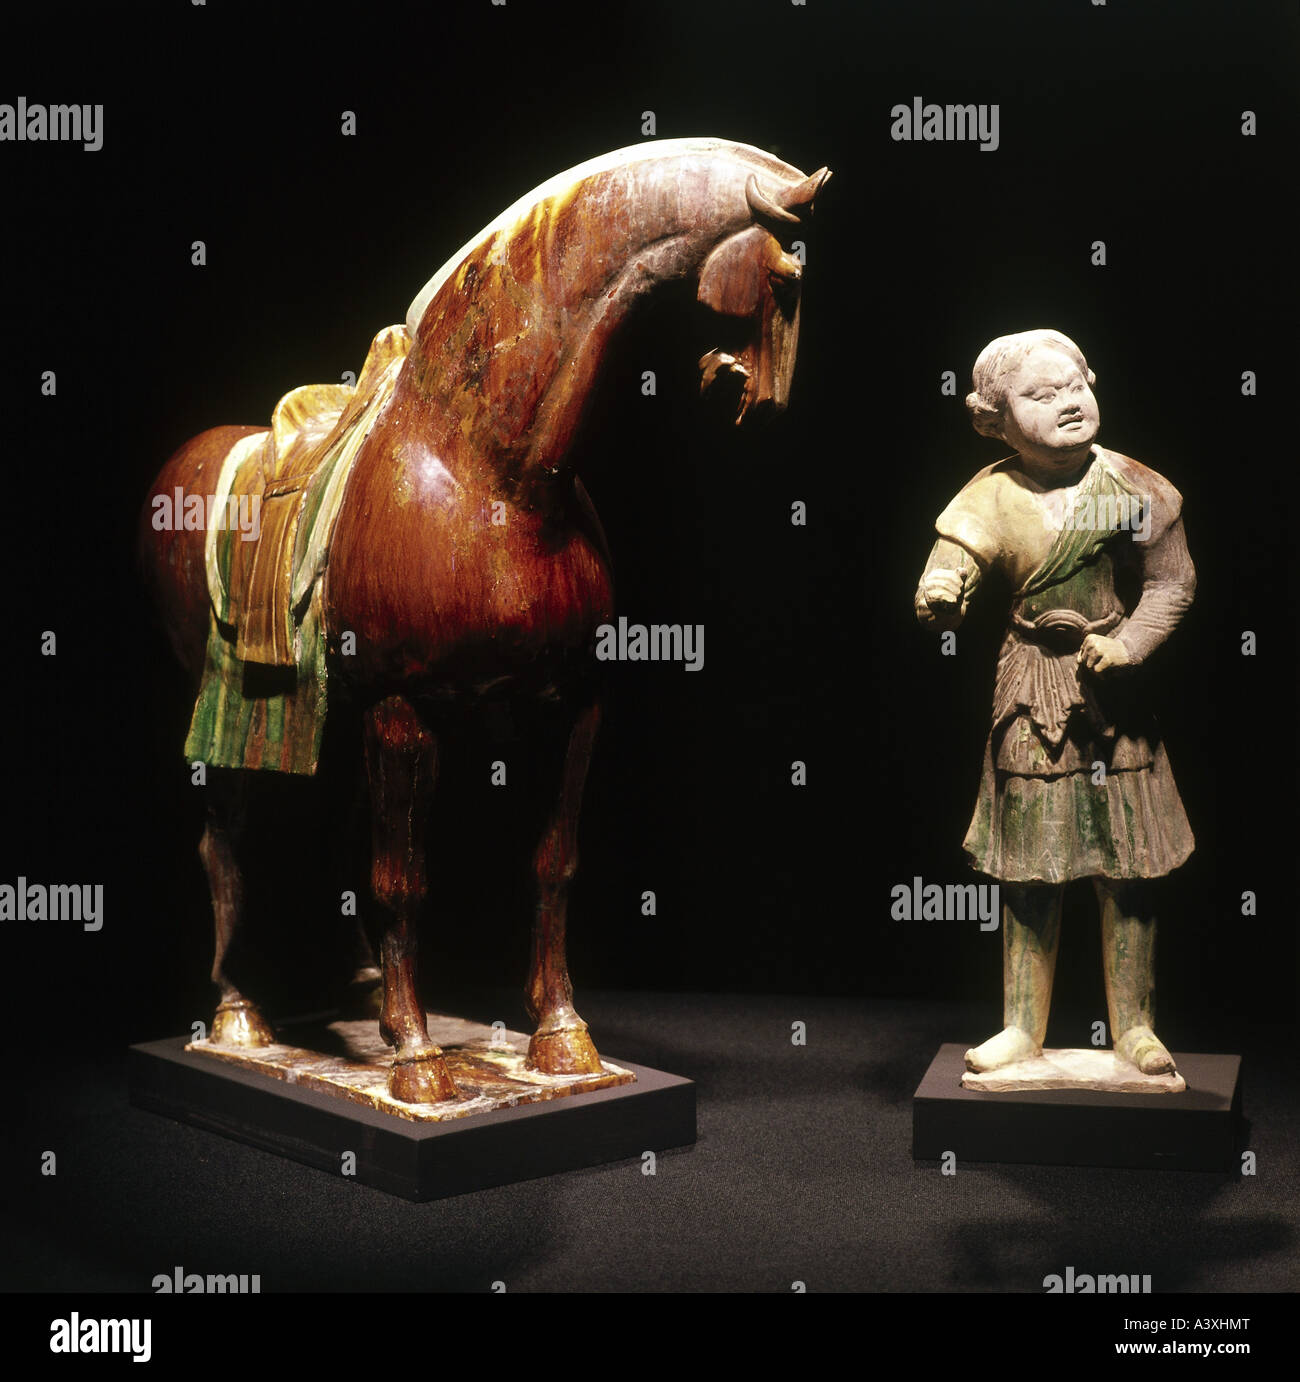 fine arts, conutries, China, sculpture, horse servant and horse, Tang dynasty, 706 - 711, clay, glazed, painted, - Stock Image